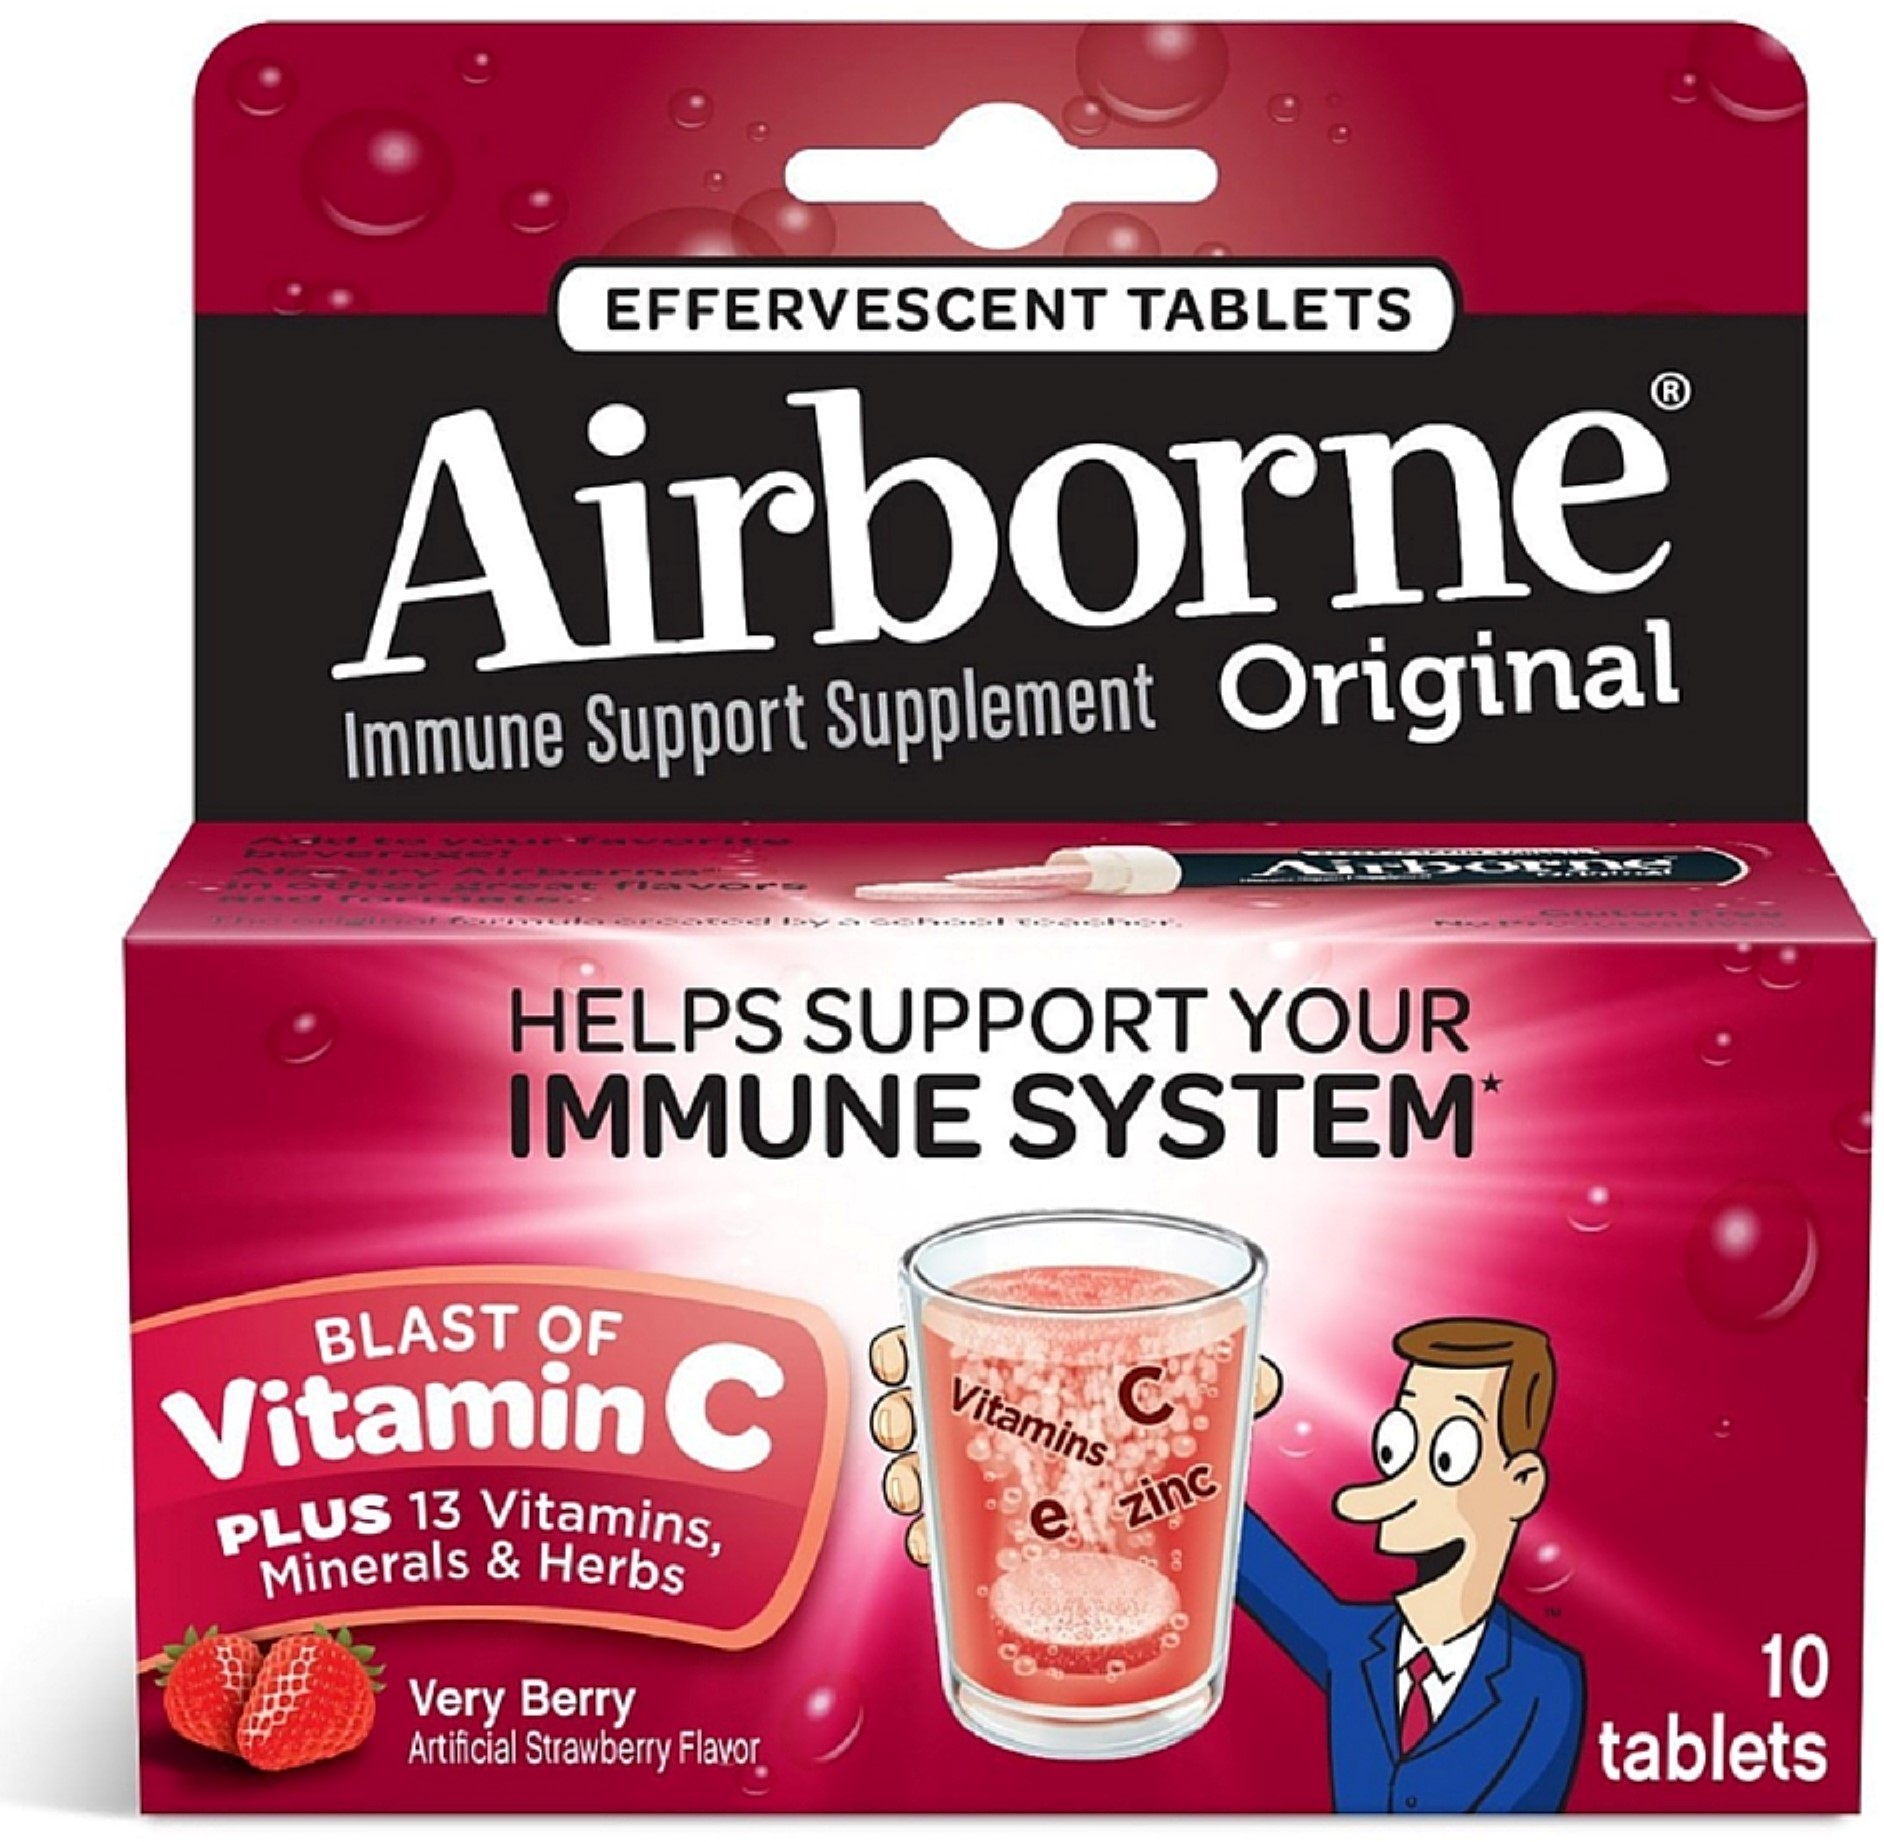 Airborne Immune Support Supplement Effervescent Tablets, Very Berry 10 ea (Pack of 6)